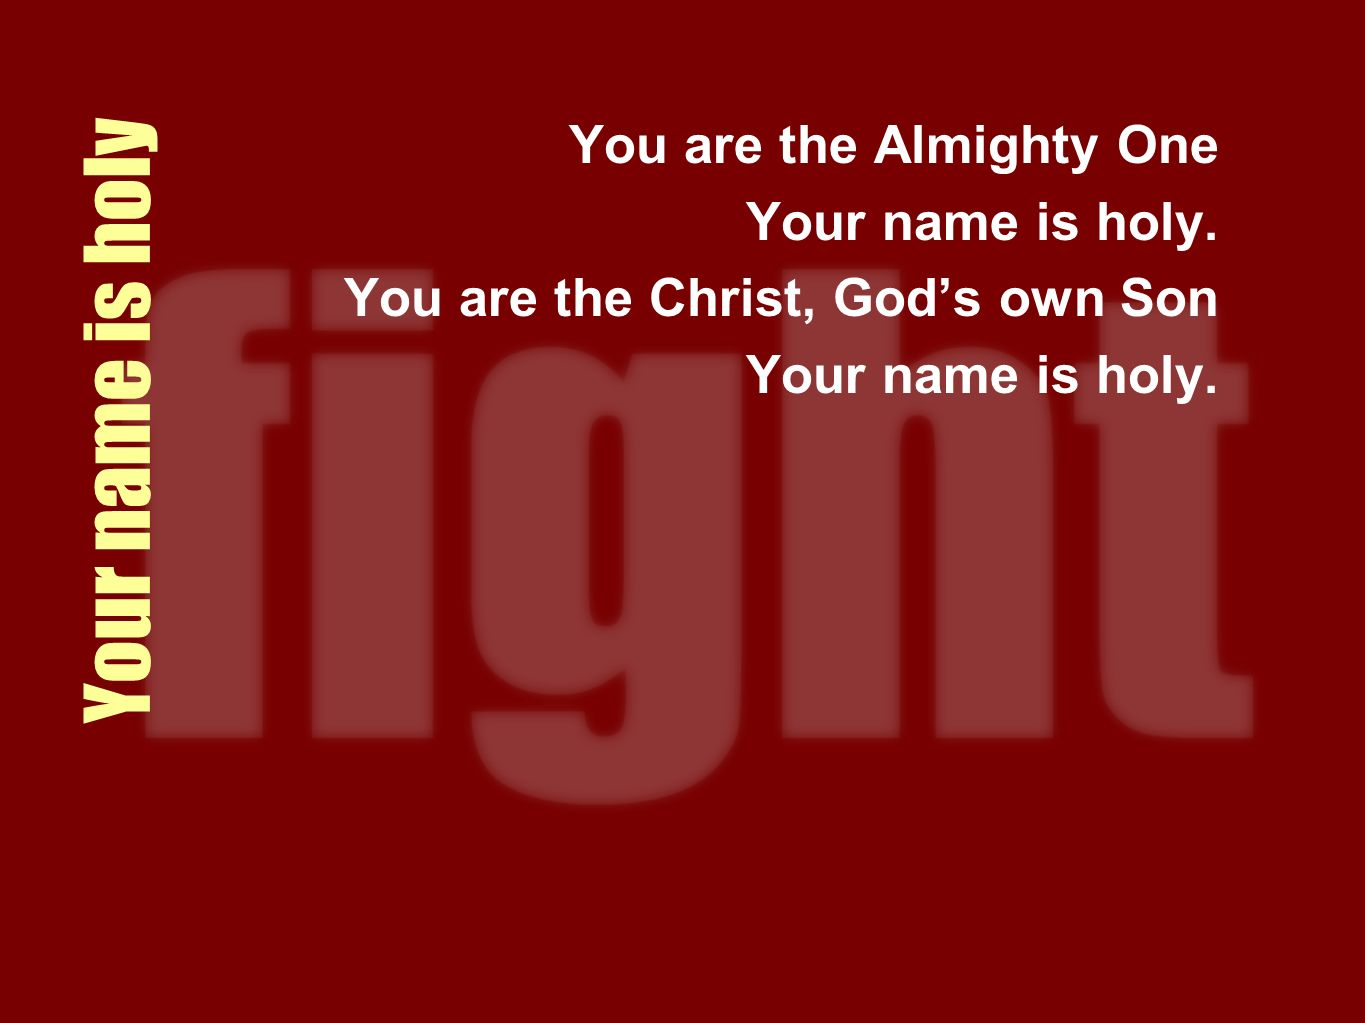 Your name is holy You are the Almighty One Your name is holy. You are the Christ, Gods own Son Your name is holy.